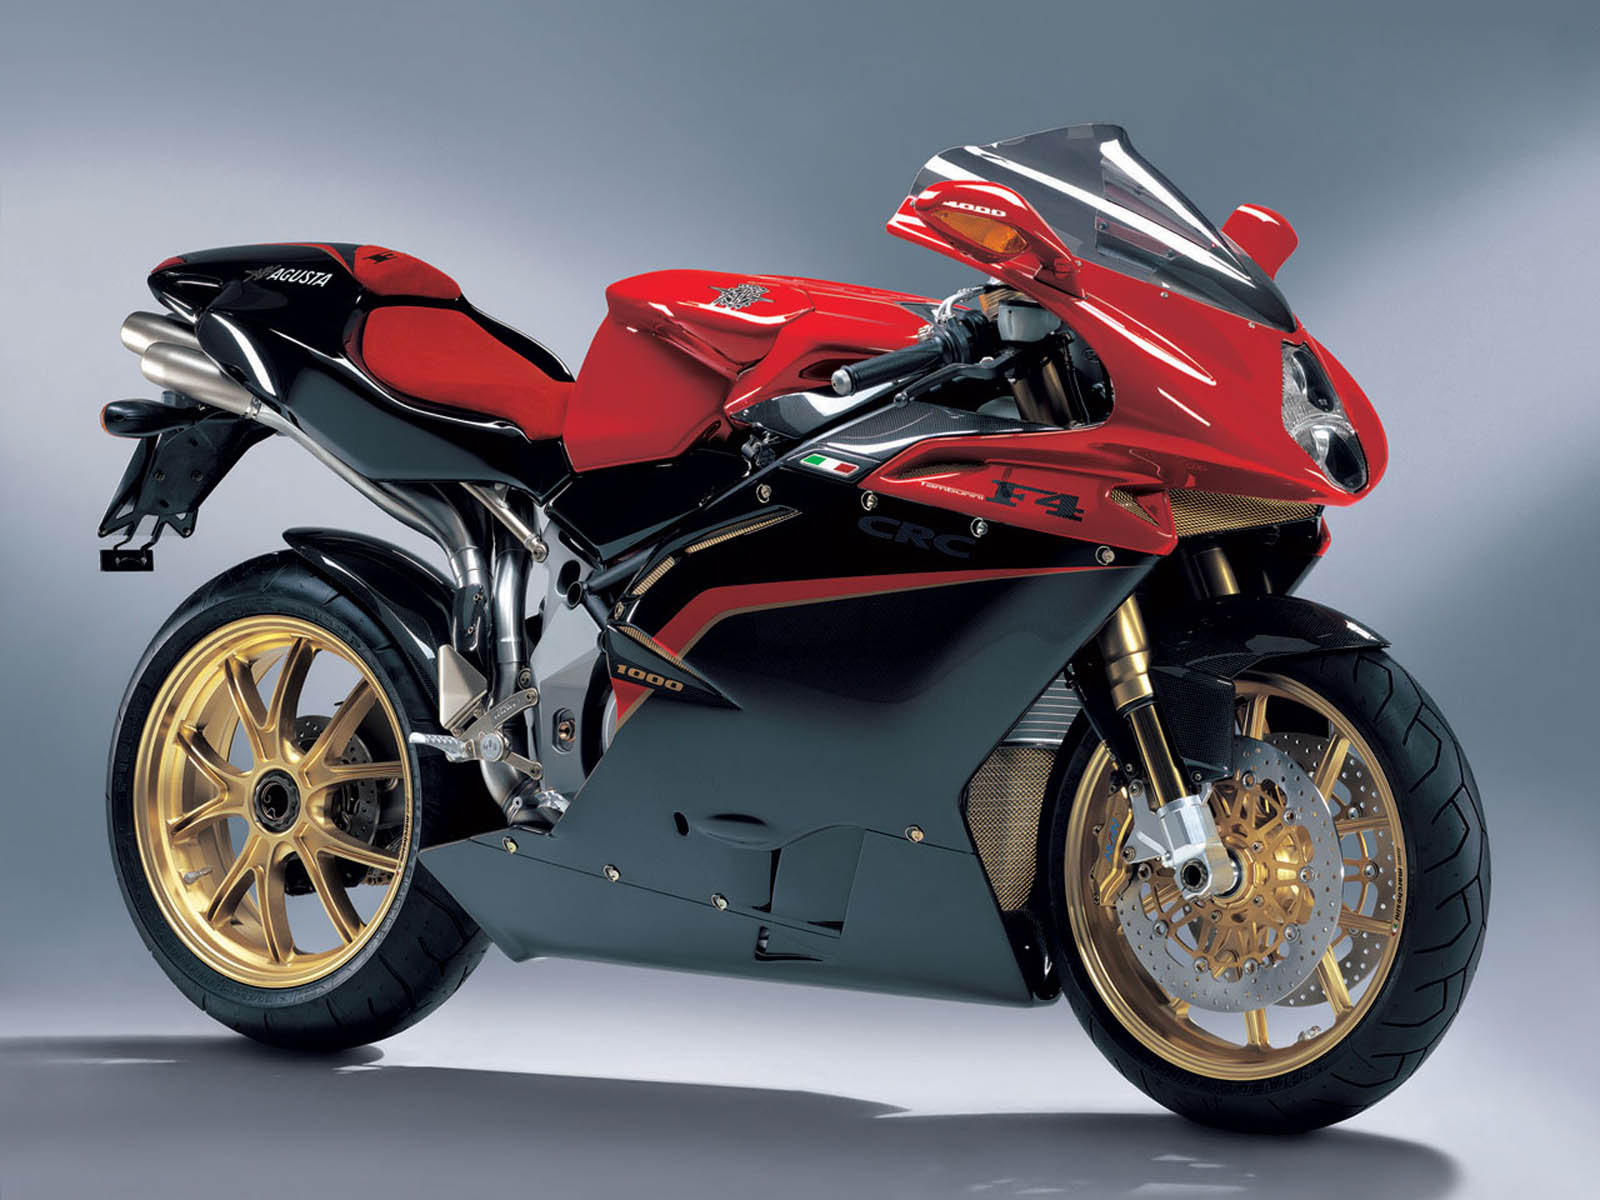 Sport Motorcycle Iphone Wallpaper: Wallpaper: Sports Motorcycles Wallpapers